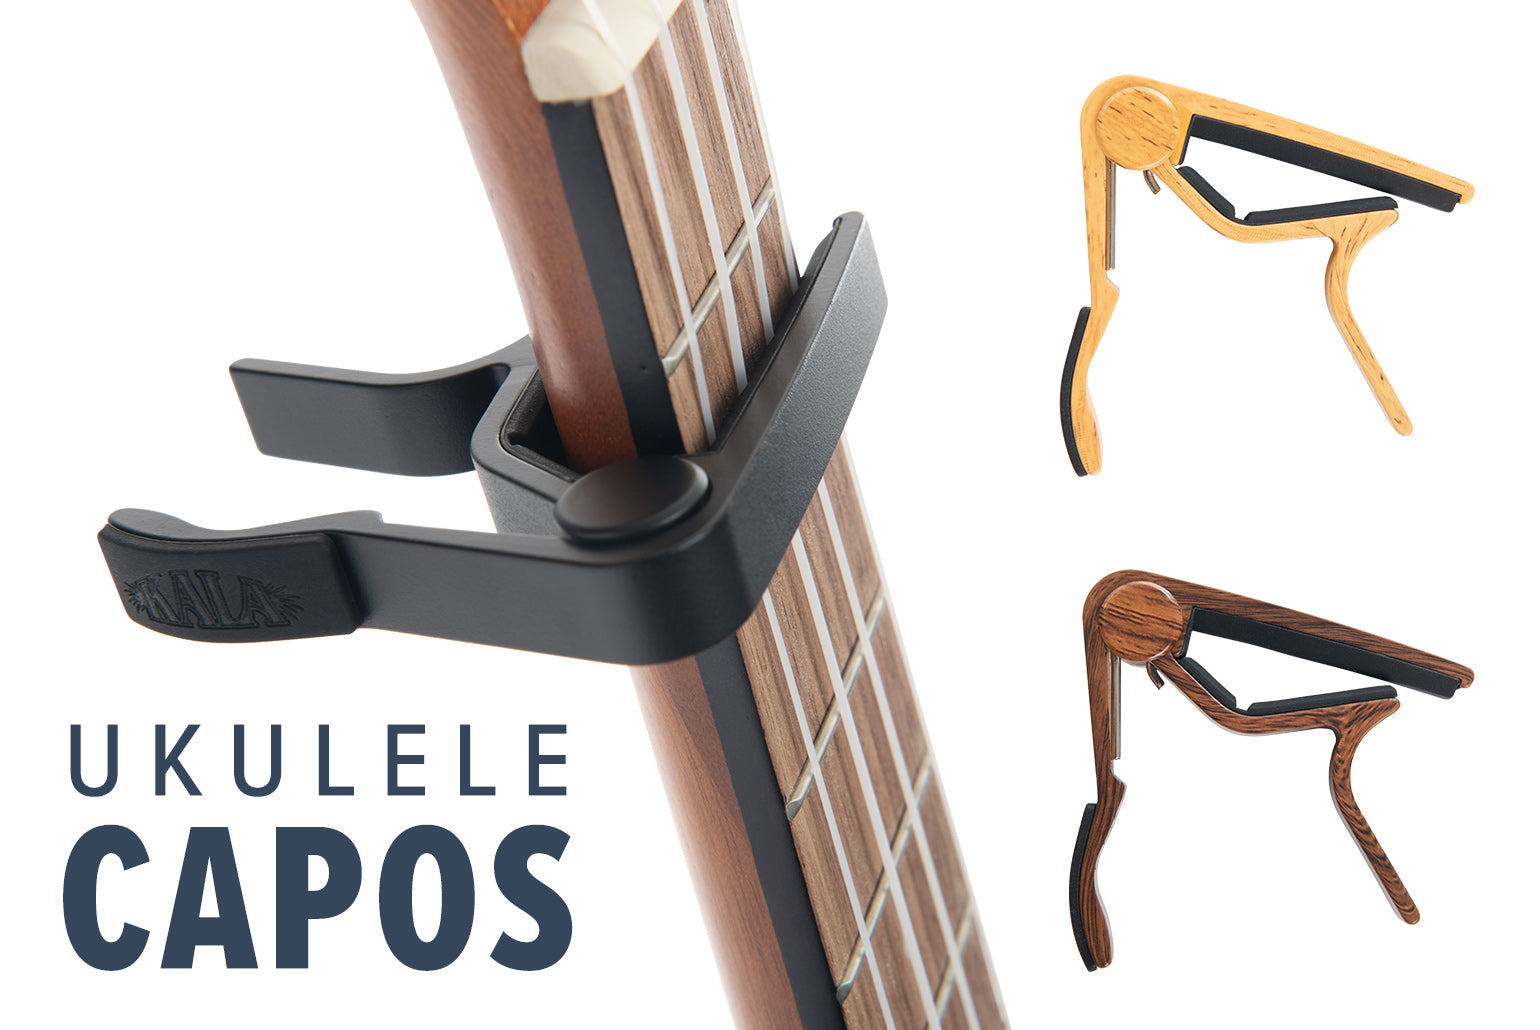 The Case For Ukulele Capos